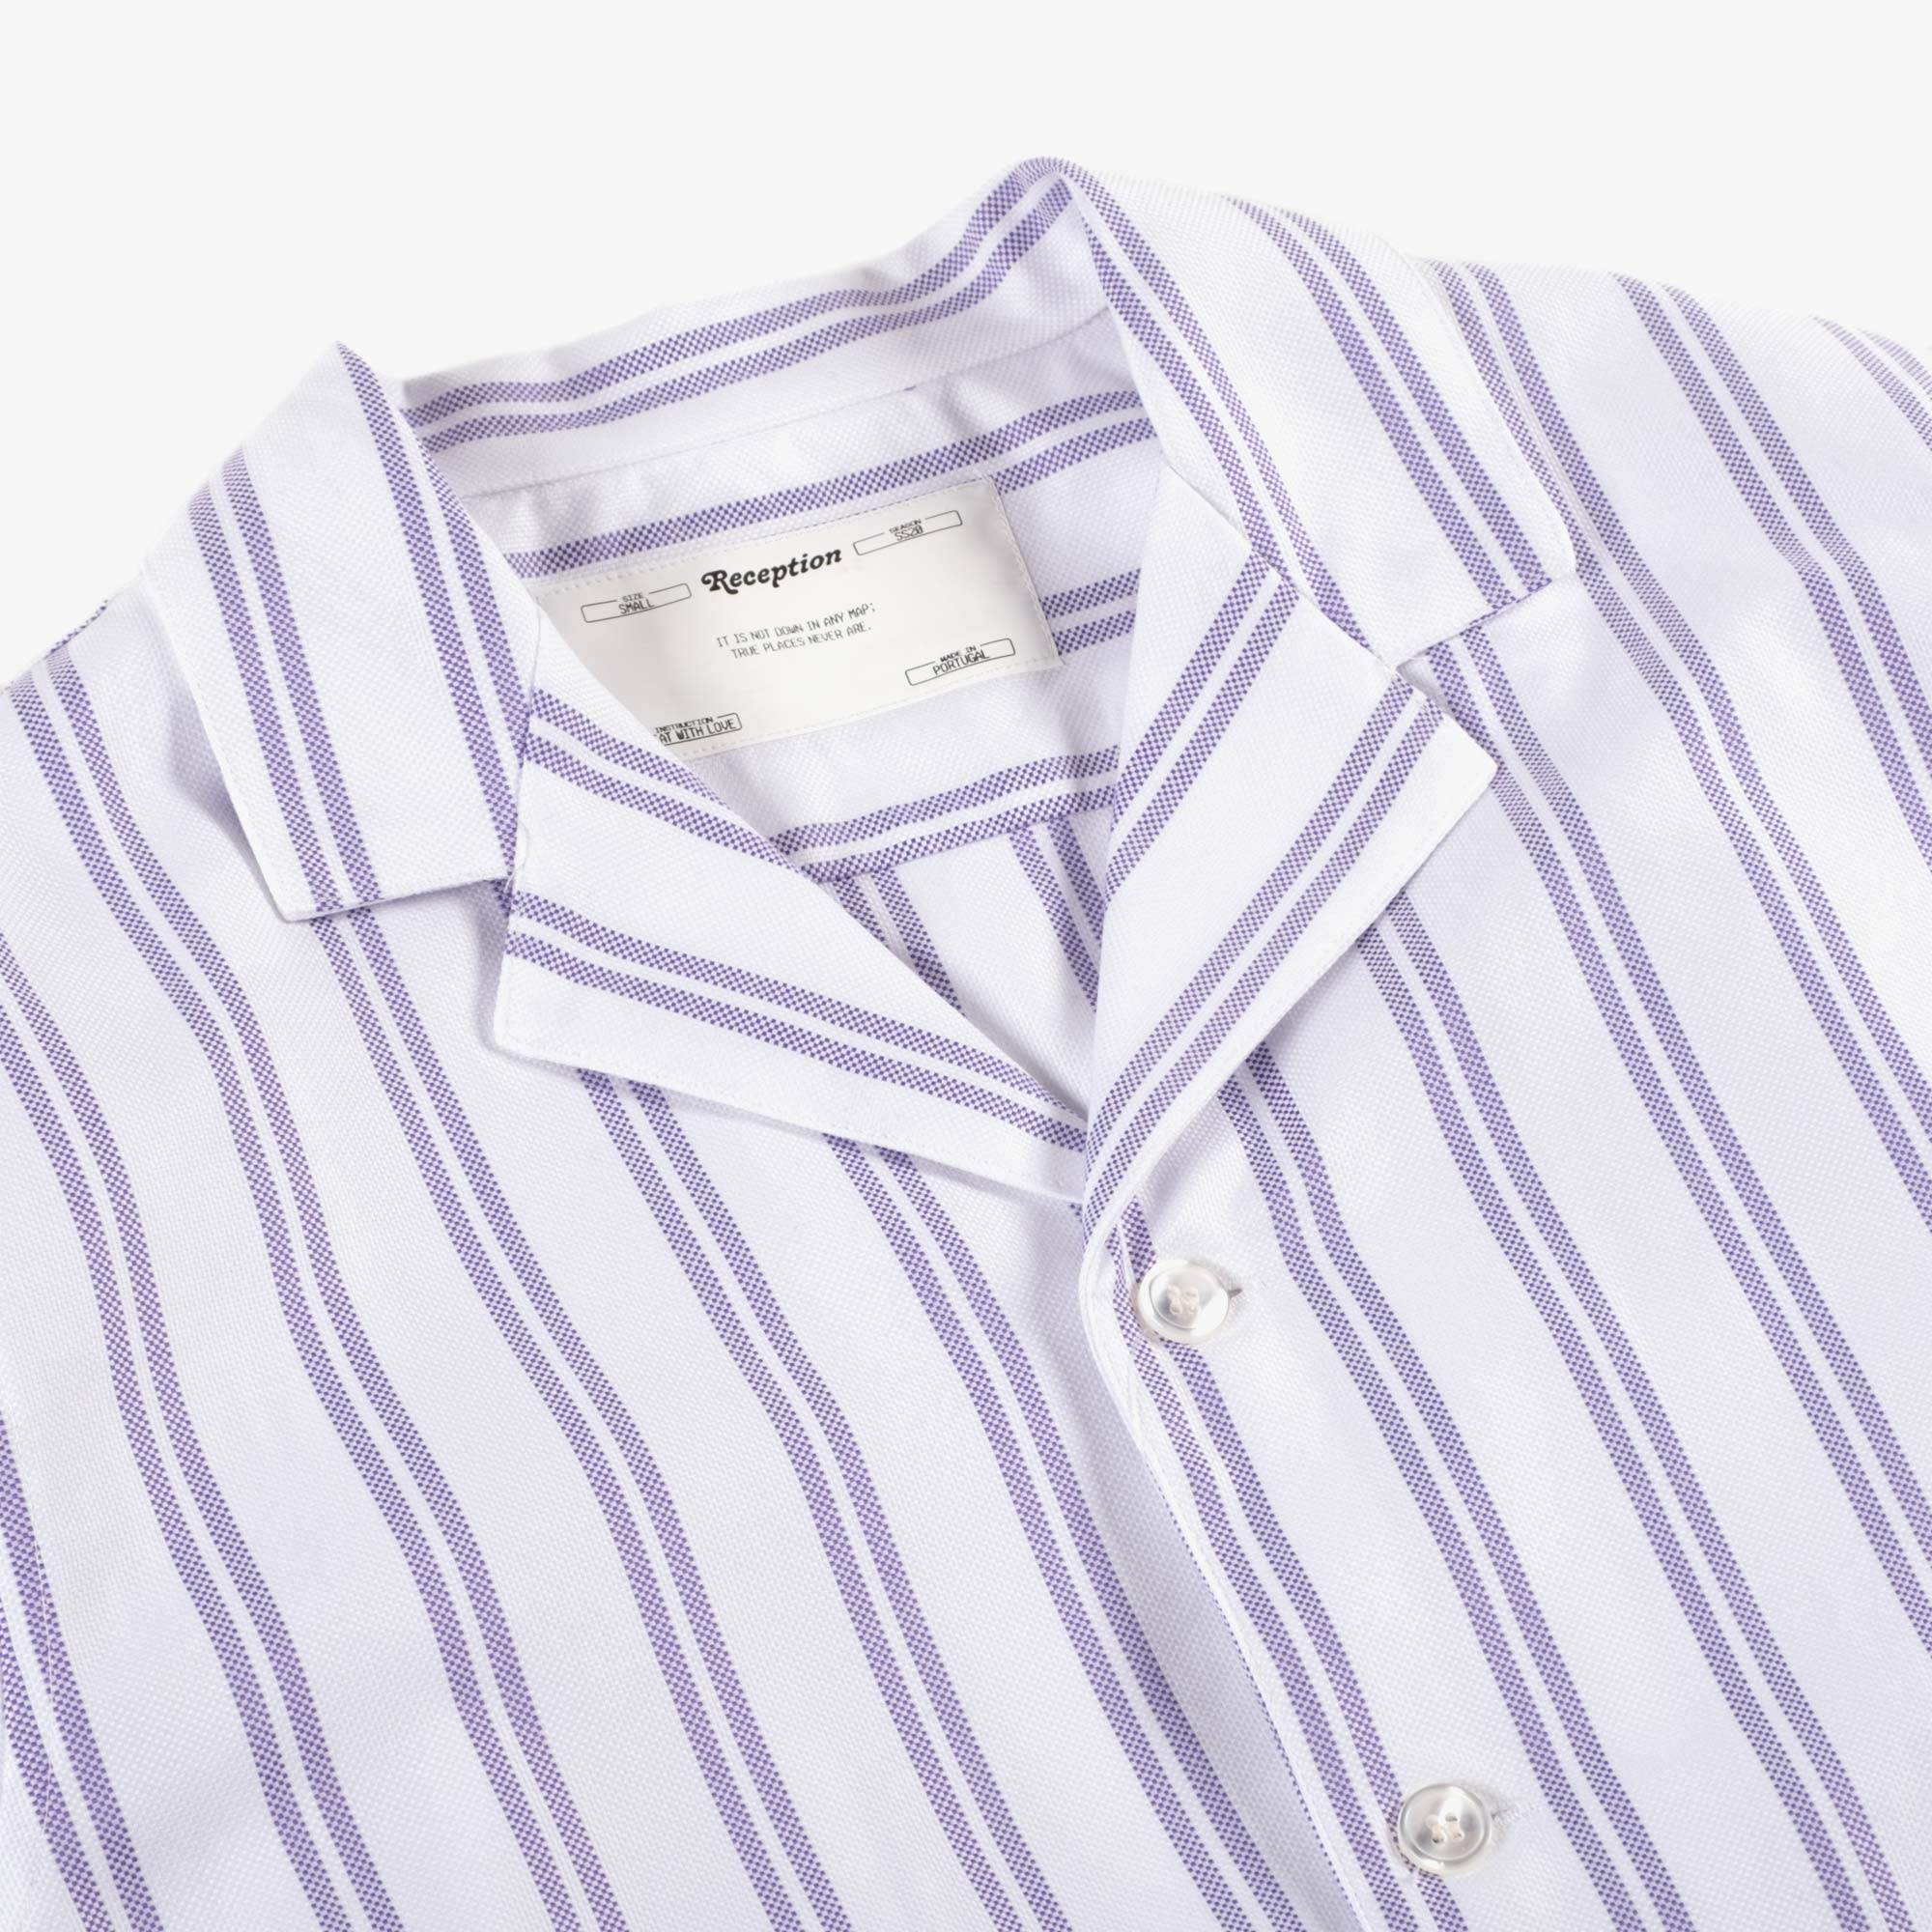 Reception Teba Shirt - White / Lavender 2